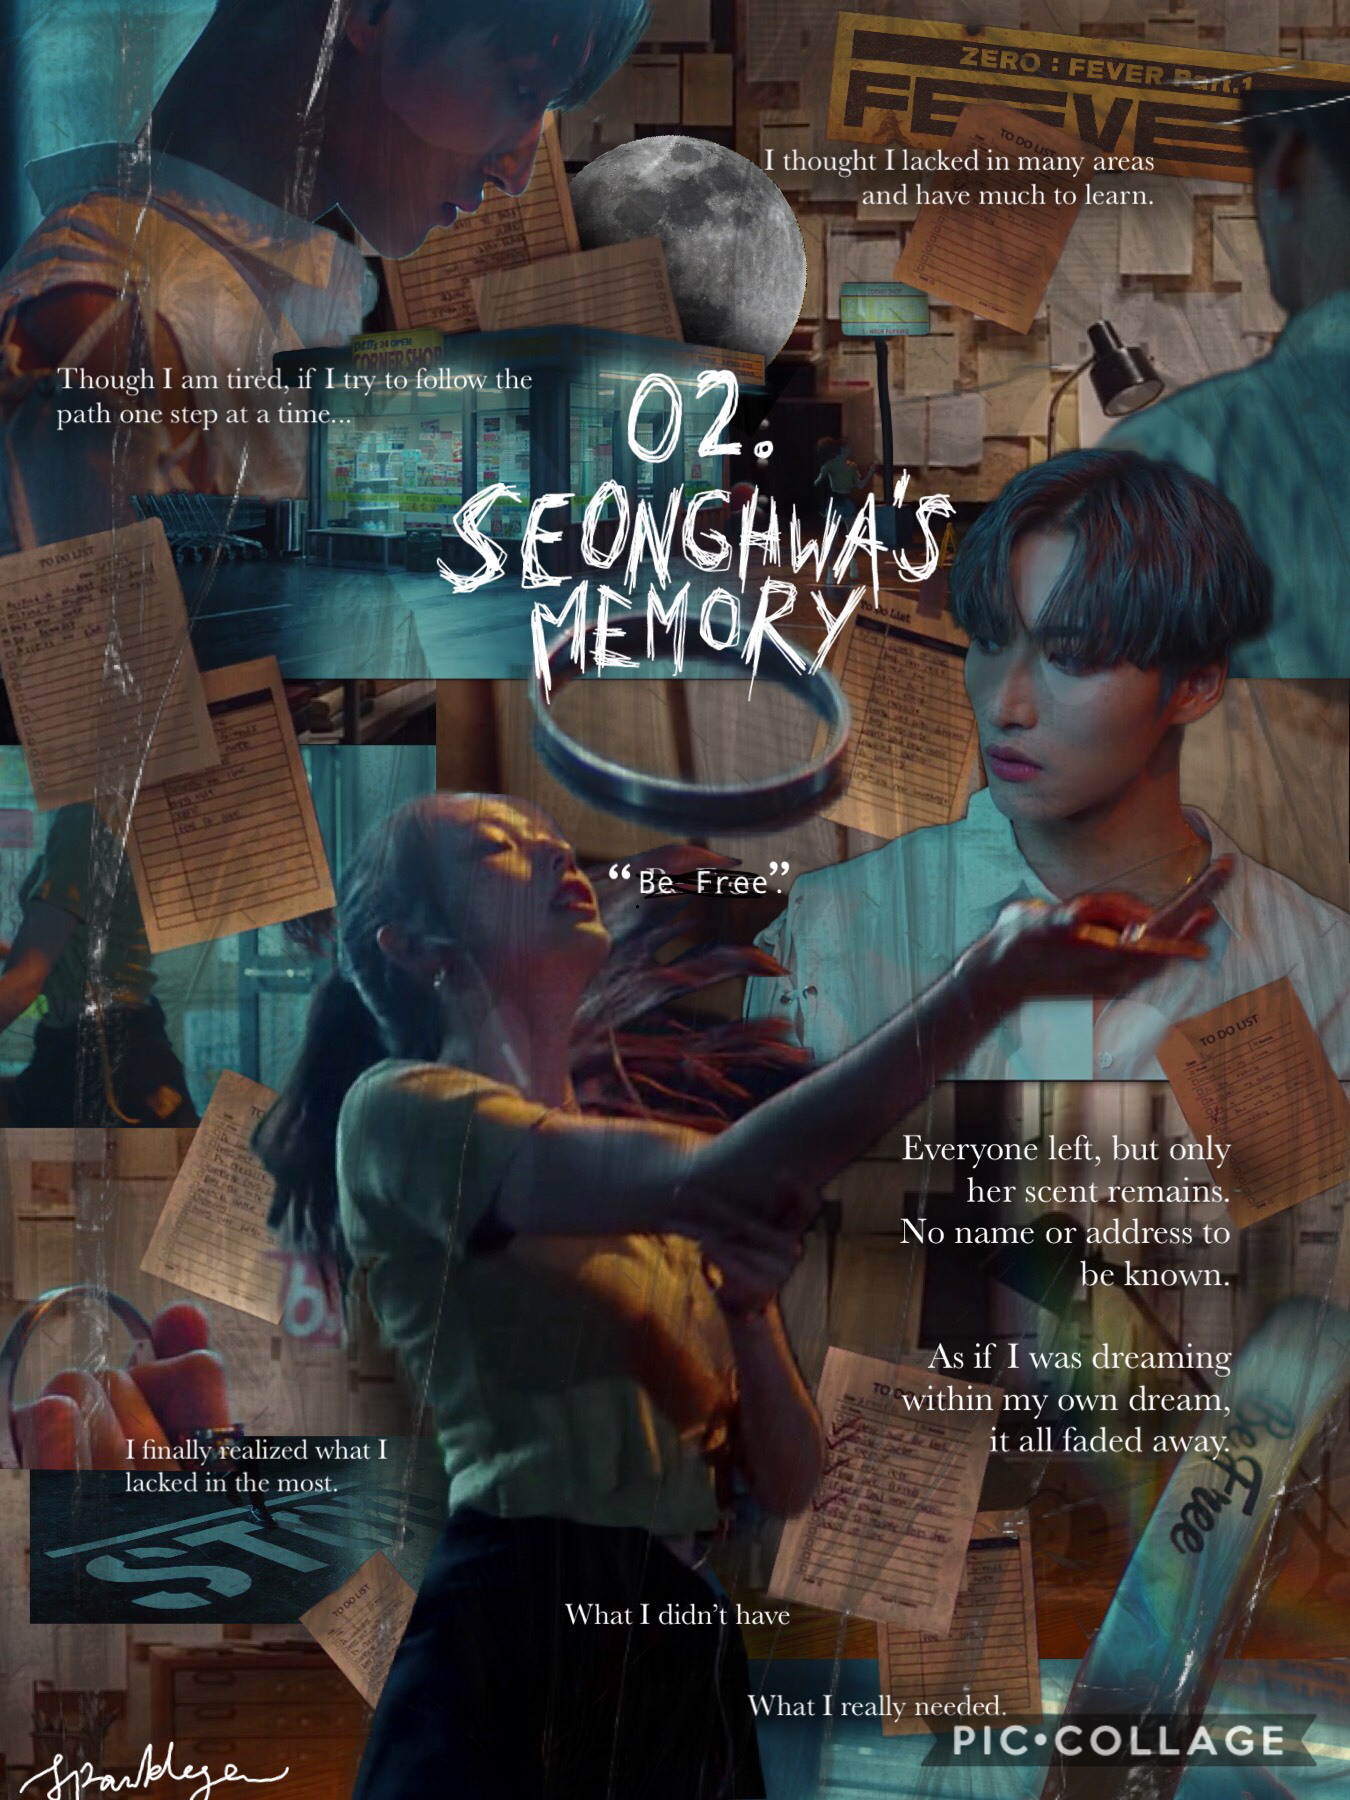 """[3/10] 02. """"Seonghwa's Memory"""" 